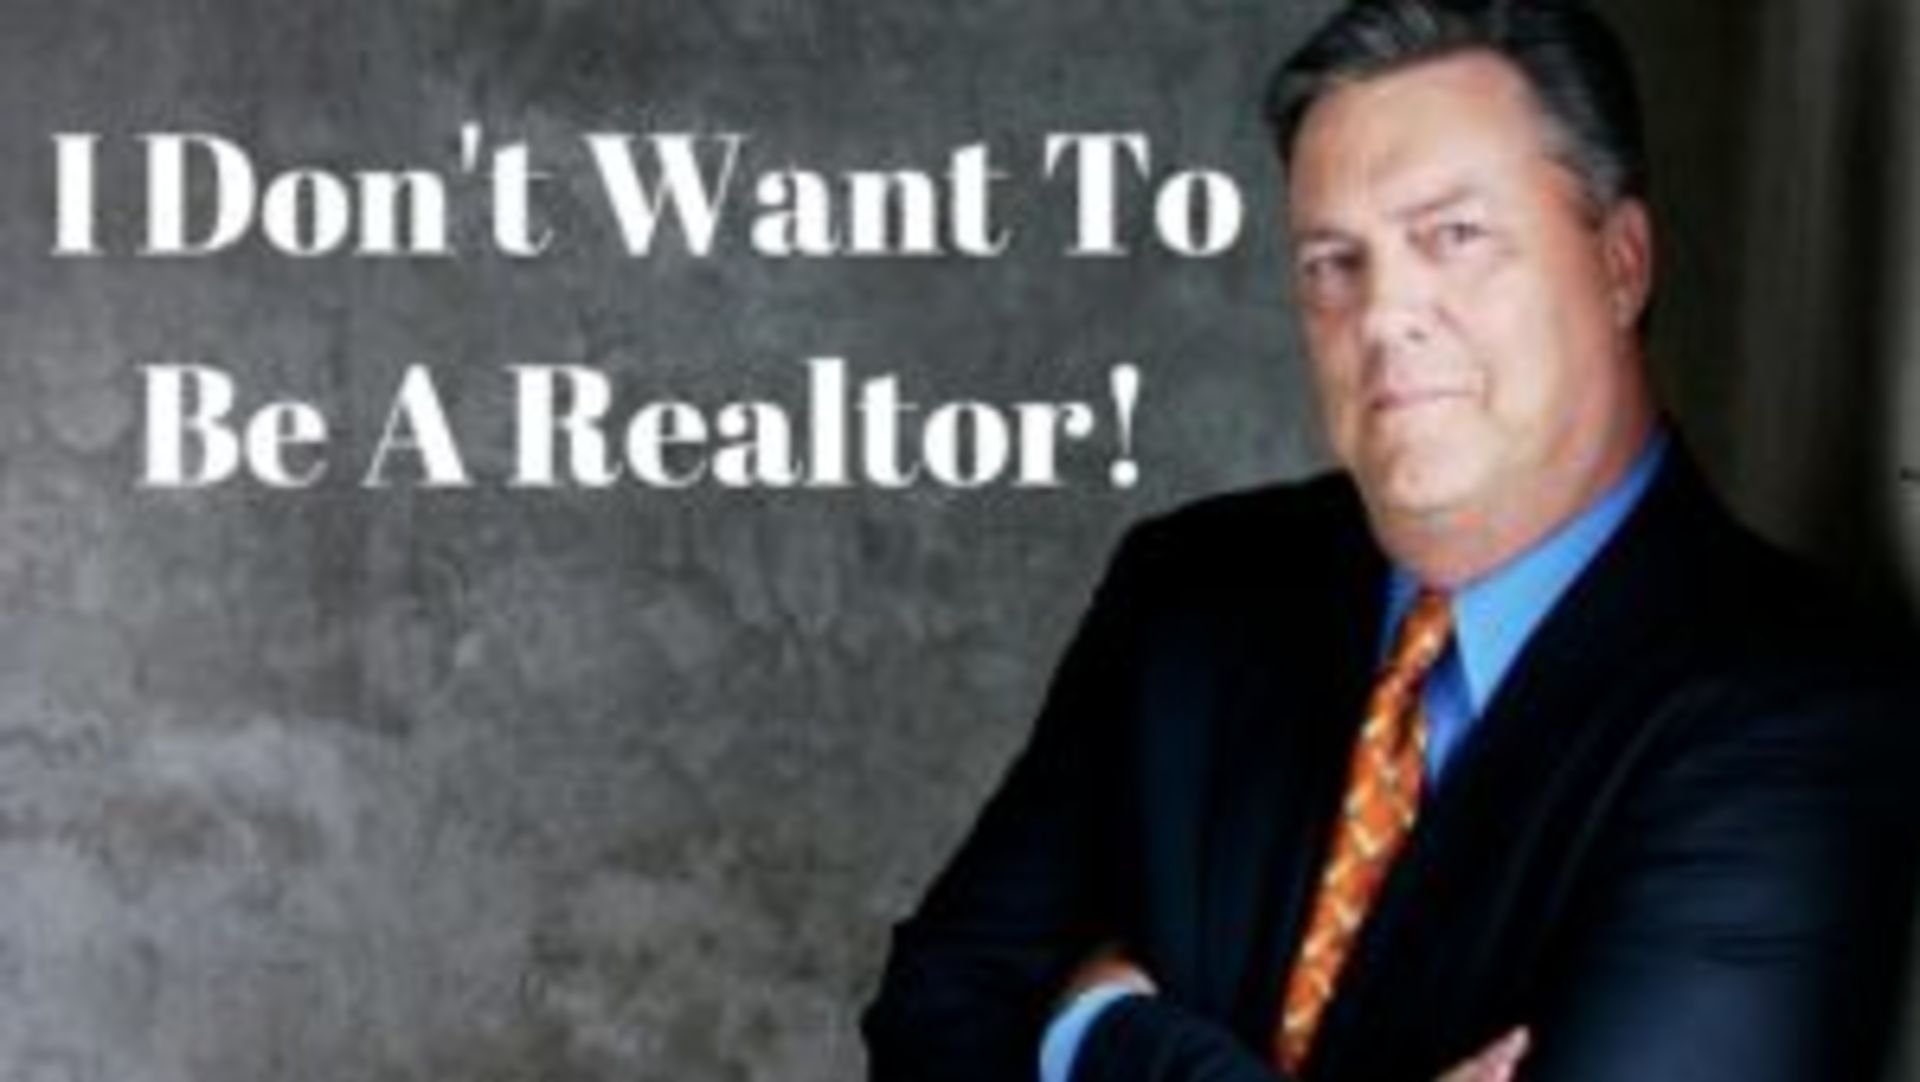 I Don't Want To Be A Realtor!